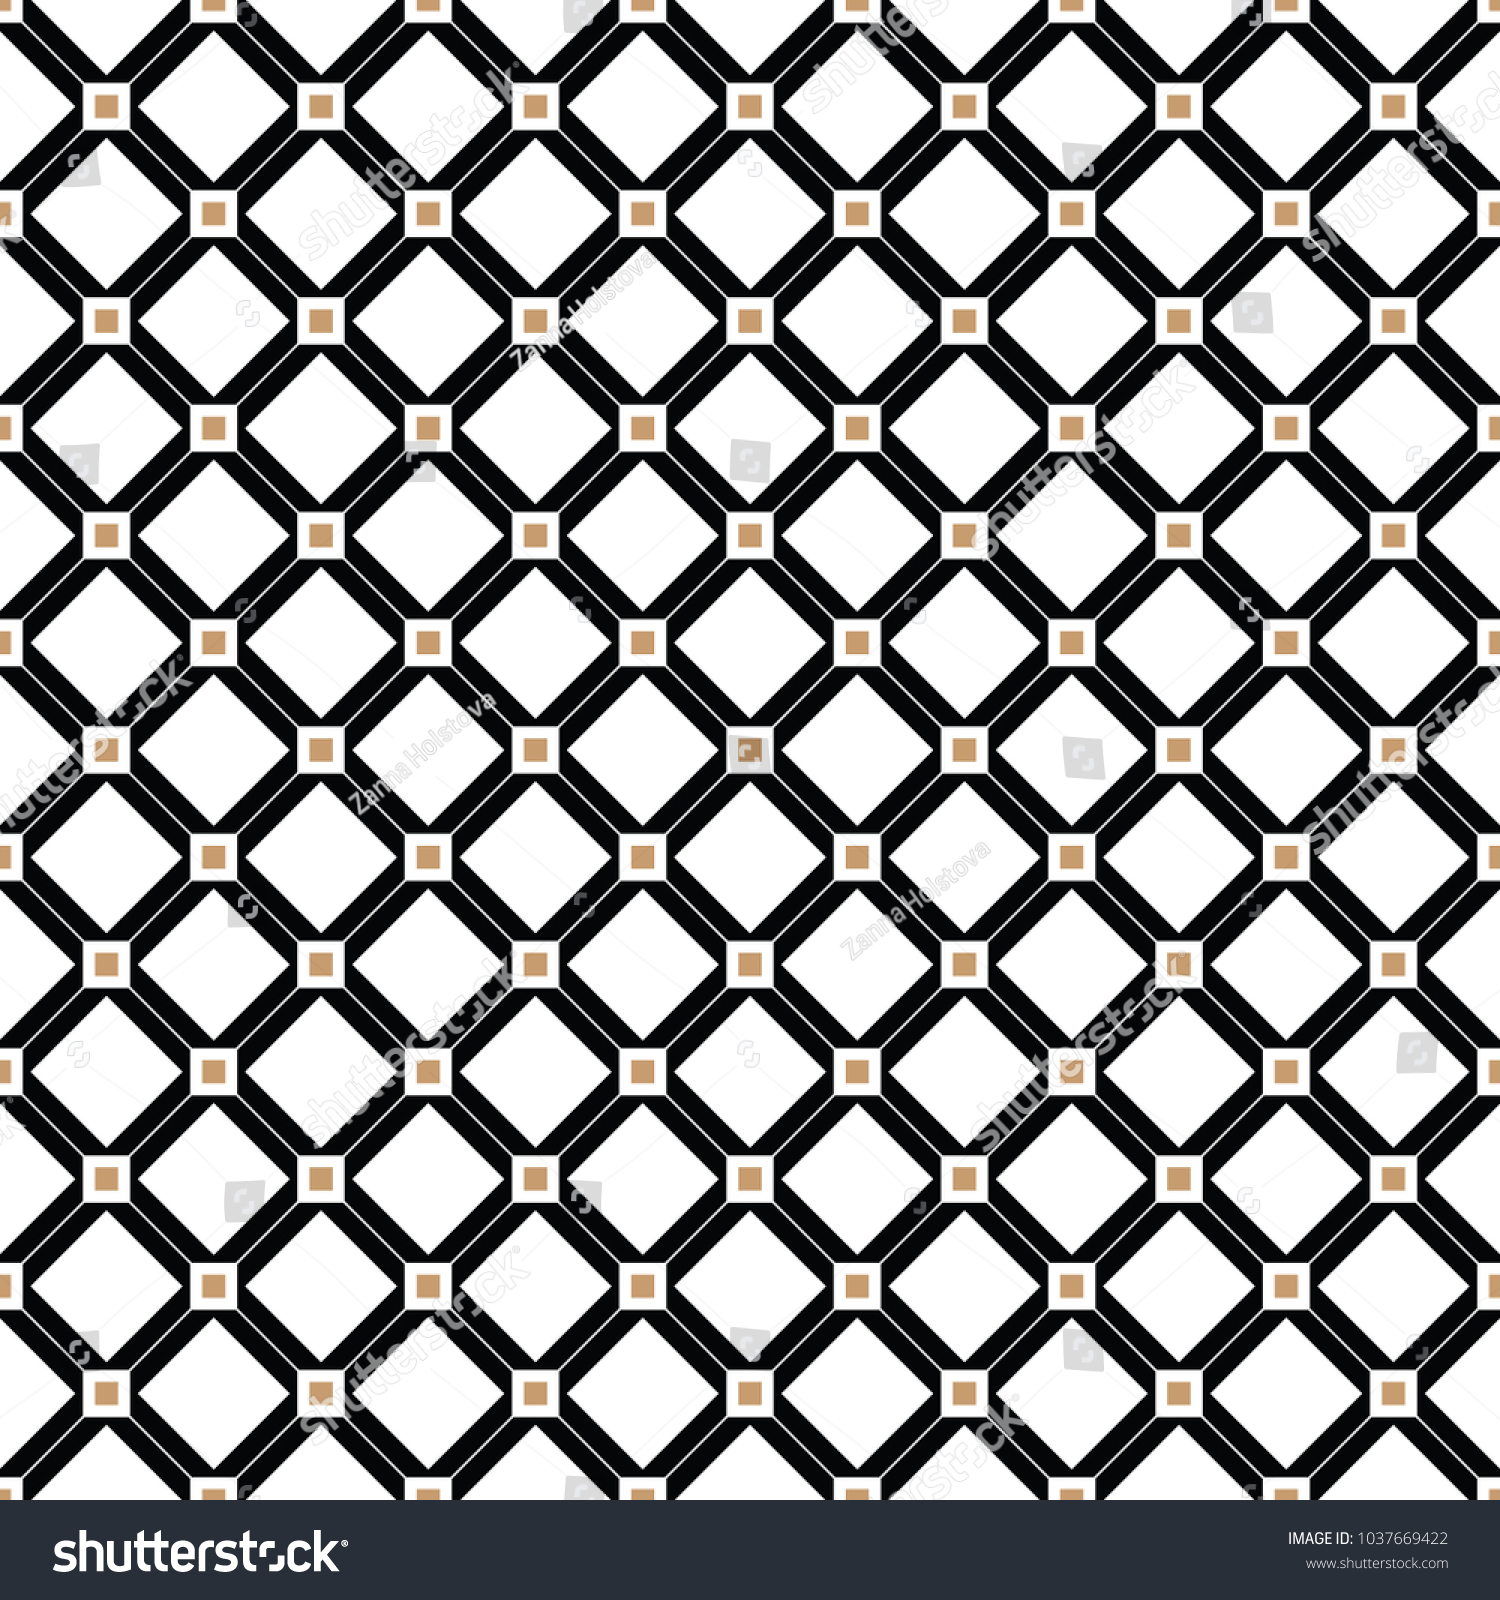 Cross Lines Vector Pattern Background Seamless Stock Vector (Royalty ...